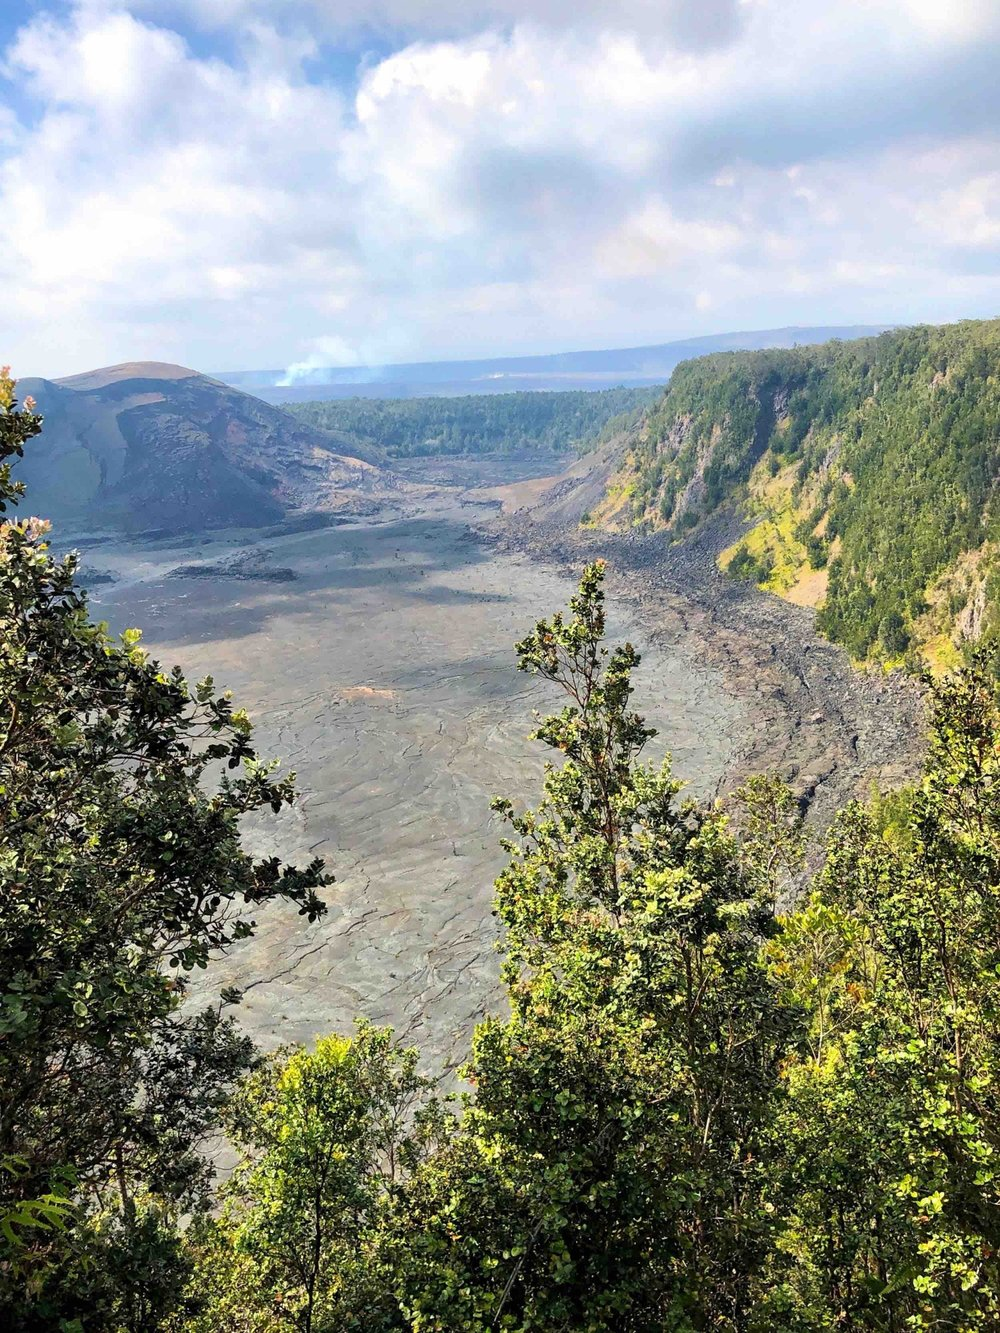 View of Kilauea Crater from the ridge top hike above.